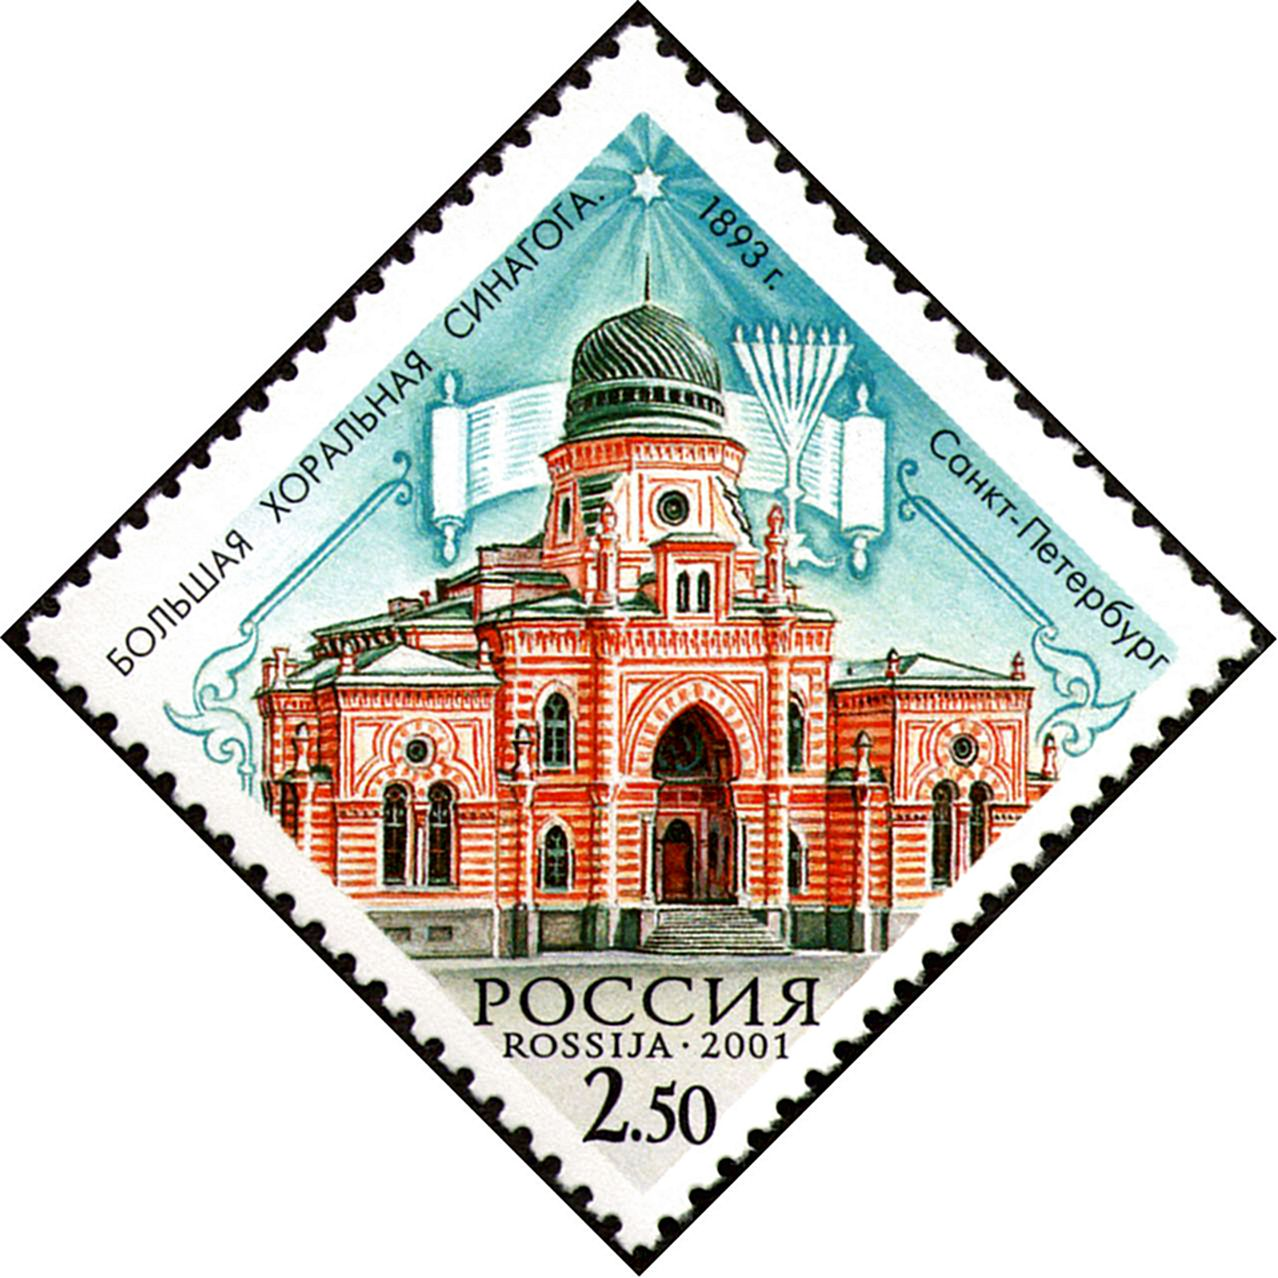 File:Stamp of Russia 2001 No 697 Grand Choral Synagogue.jpg.